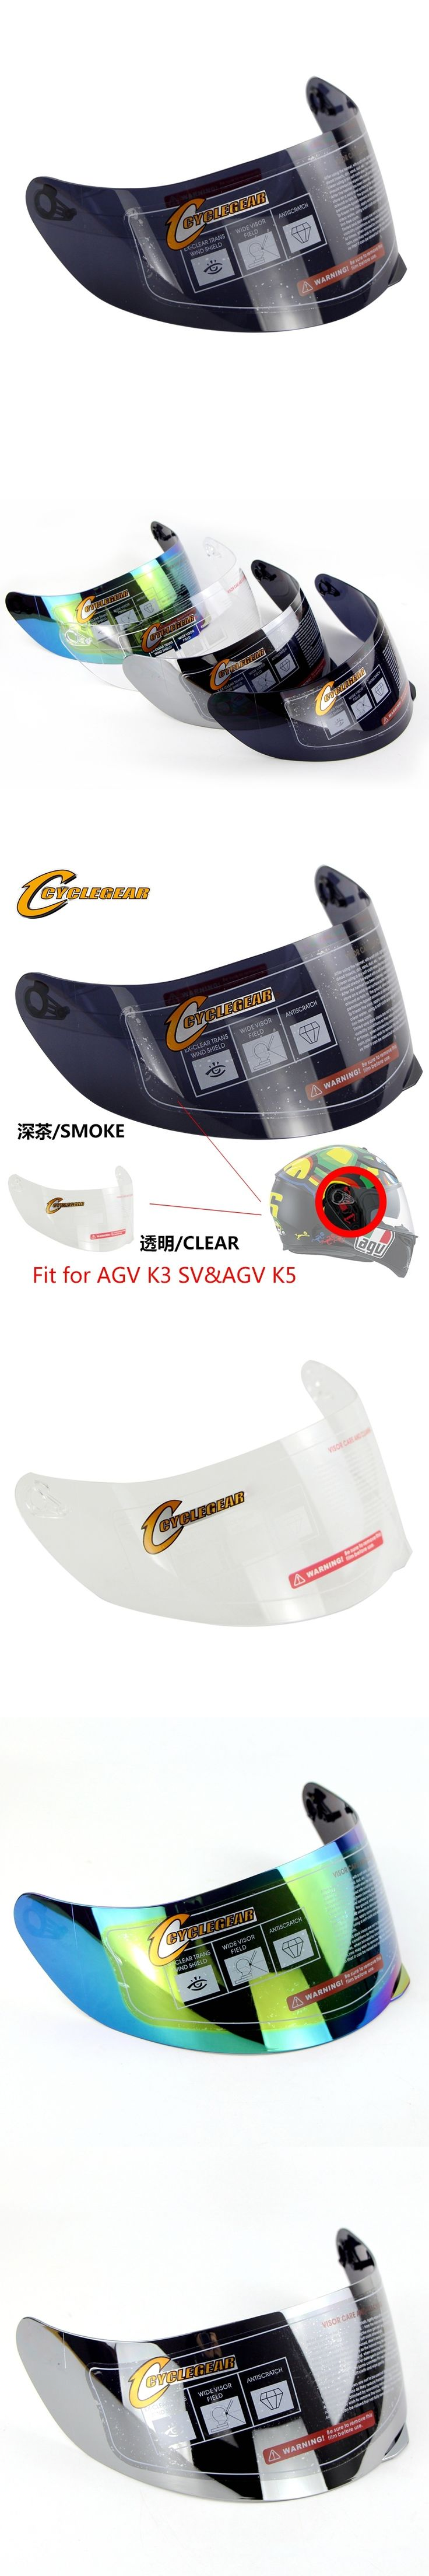 4 Colors Motorcycle Helmet Visor Fitting For AGV K5&AGV K3 SV&Cyclegear 902&CG316 Helmet Accessories&Parts